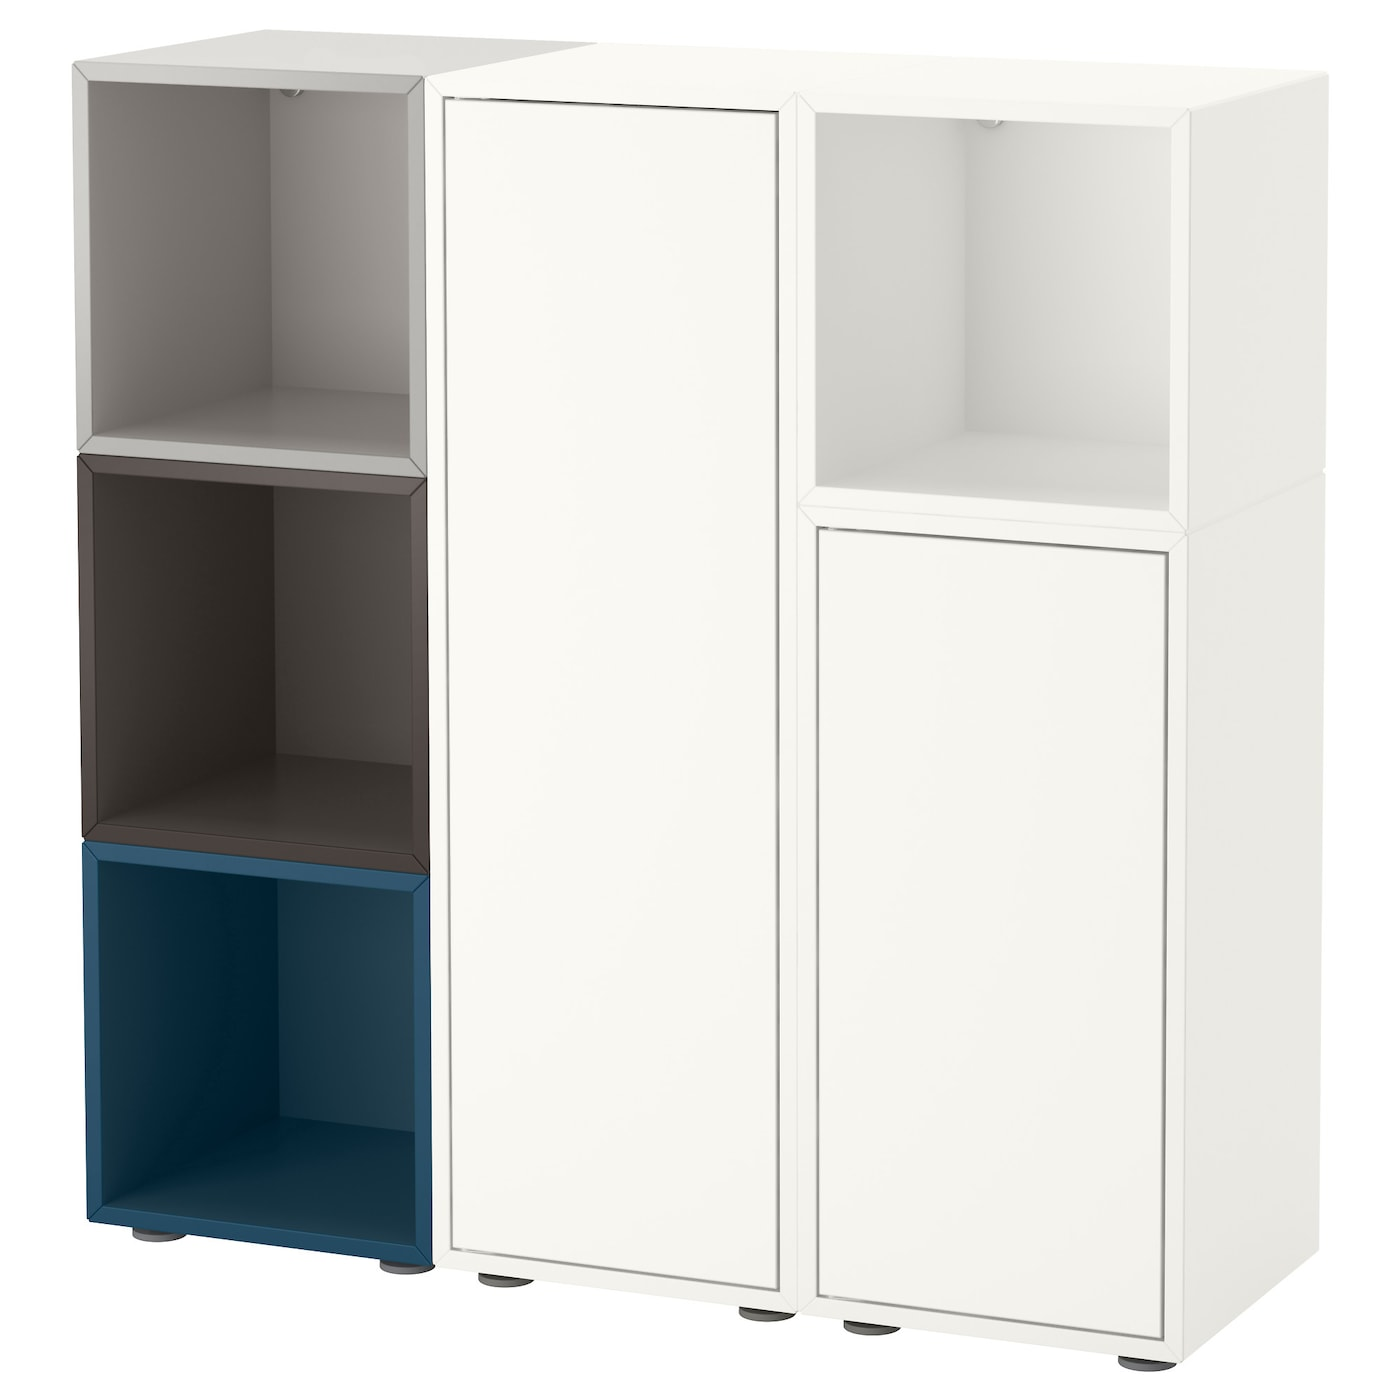 eket cabinet combination with feet multicolour 2 105 x 35 x 107 cm ikea. Black Bedroom Furniture Sets. Home Design Ideas